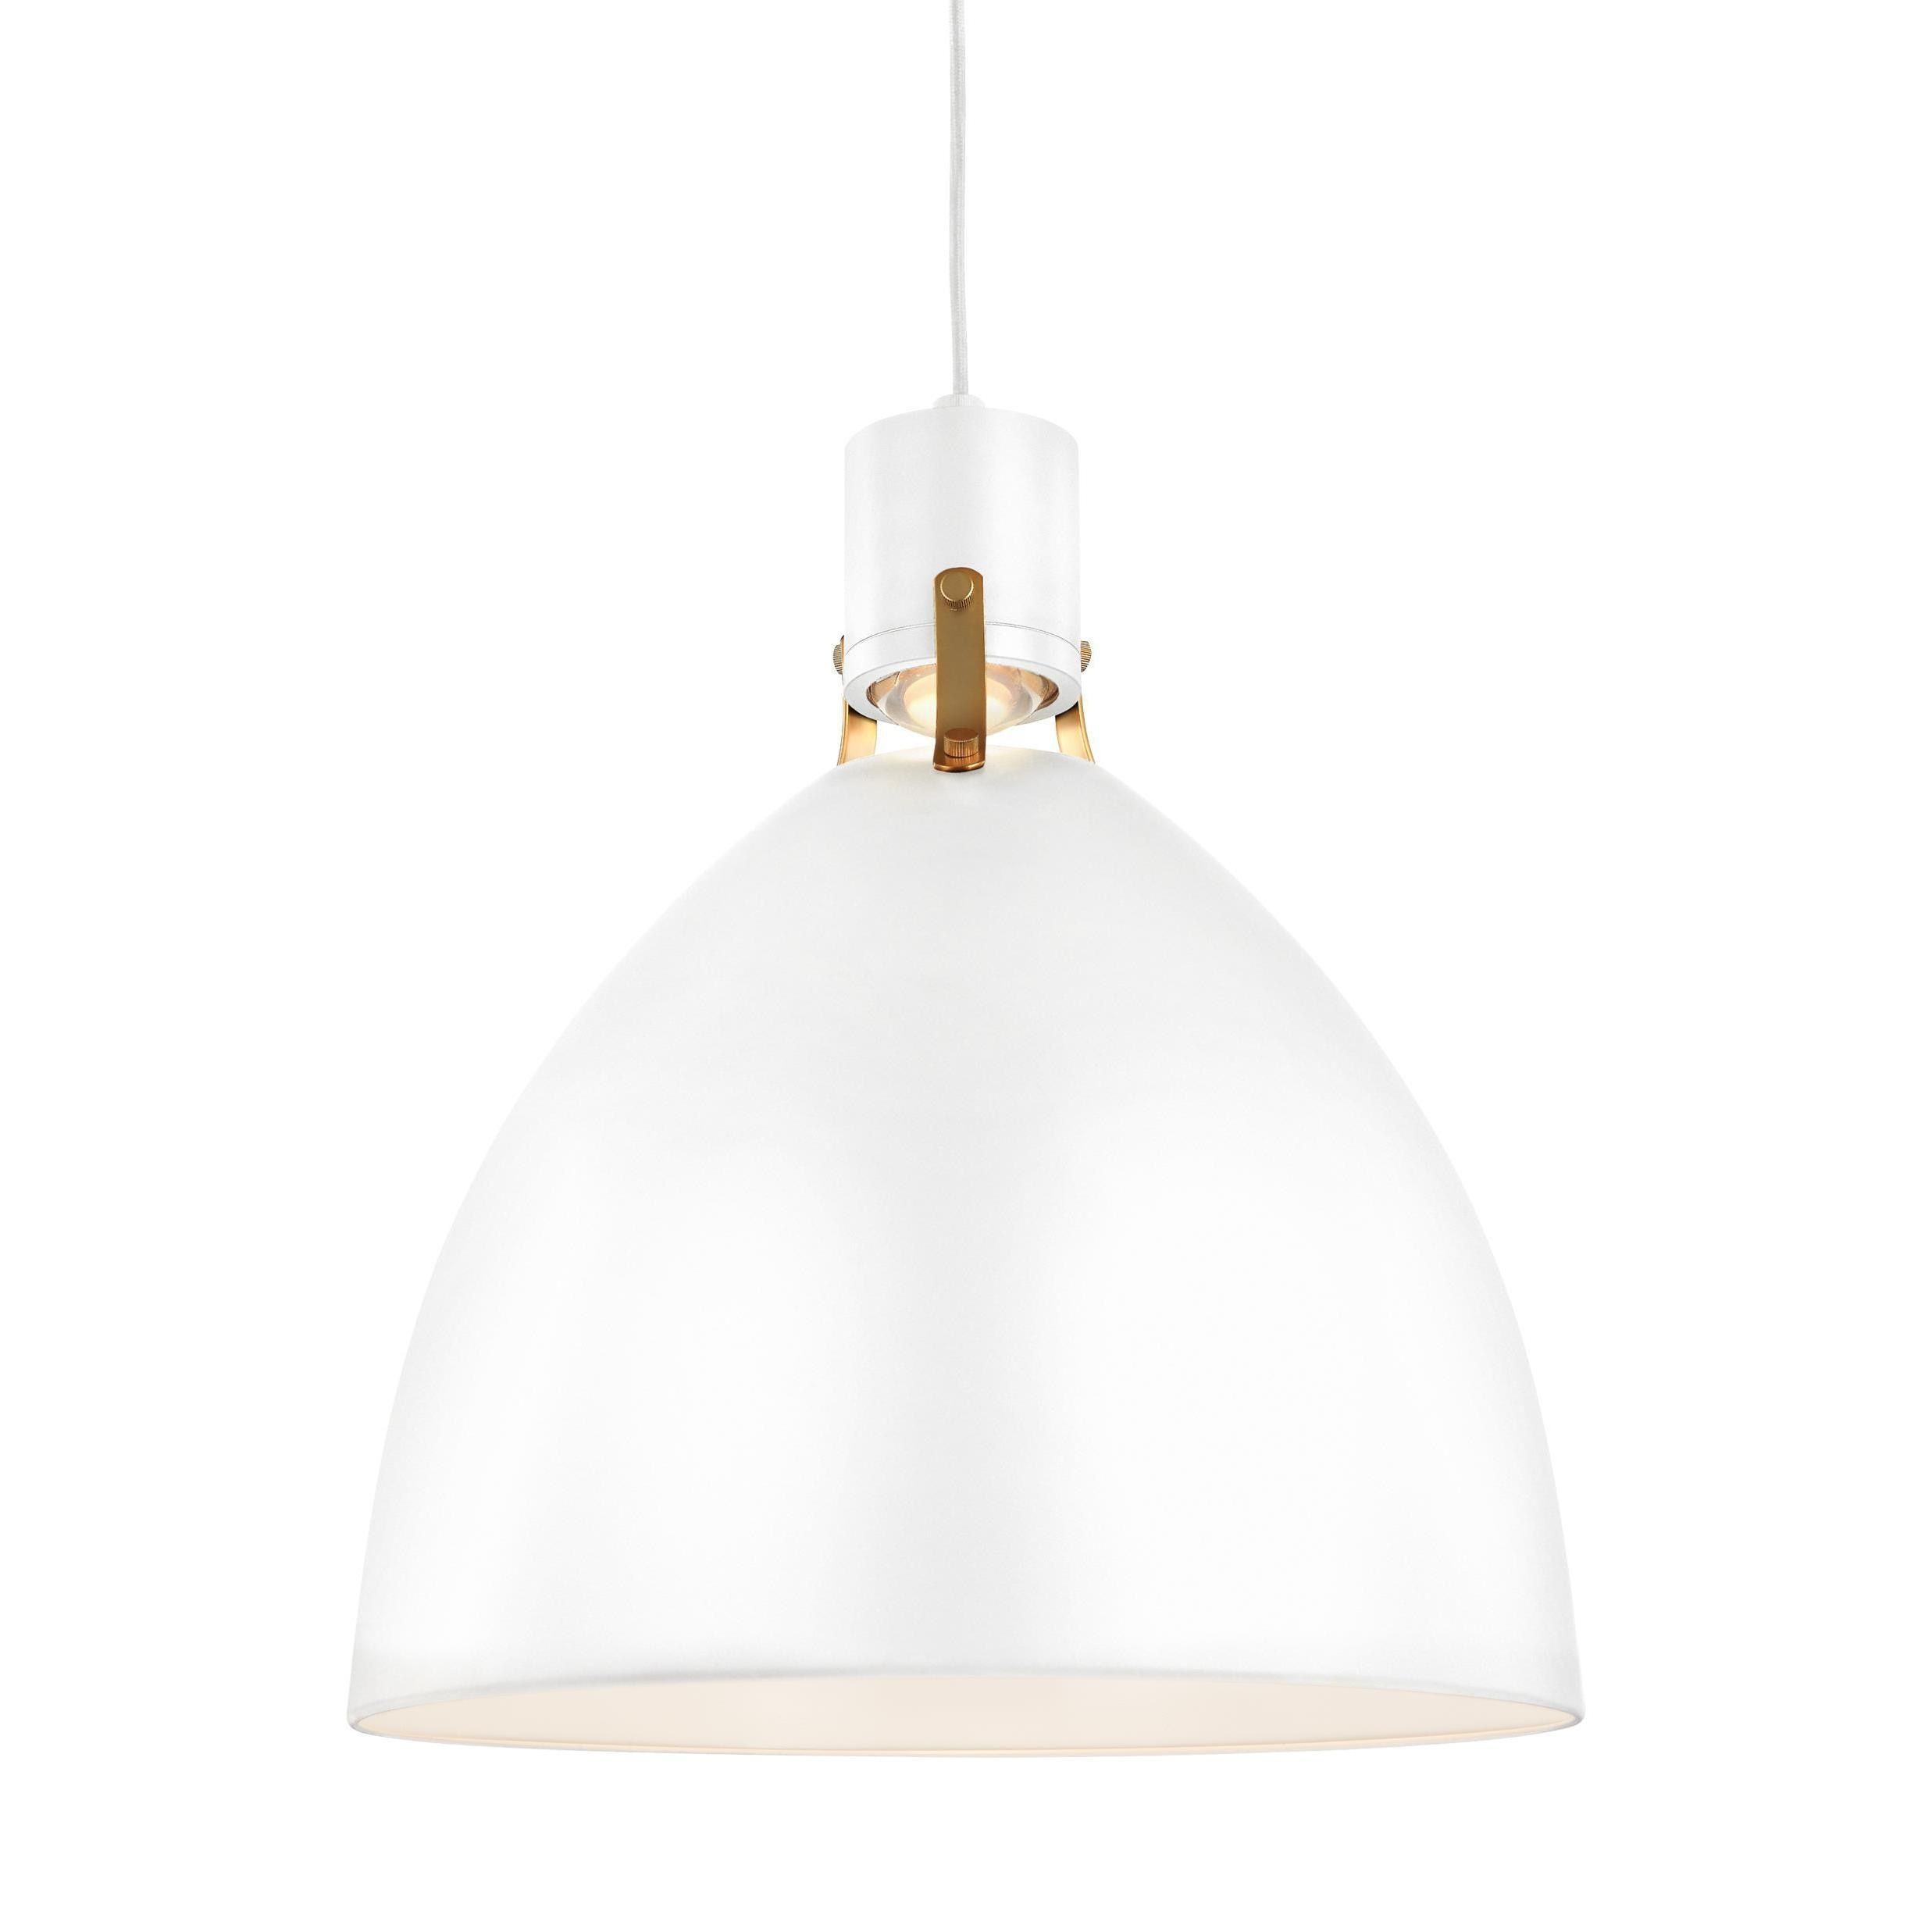 Feiss Brynne 1 Light Flat White Pendant In 2019 | Products Within Nadeau 1 Light Single Cone Pendants (View 12 of 30)